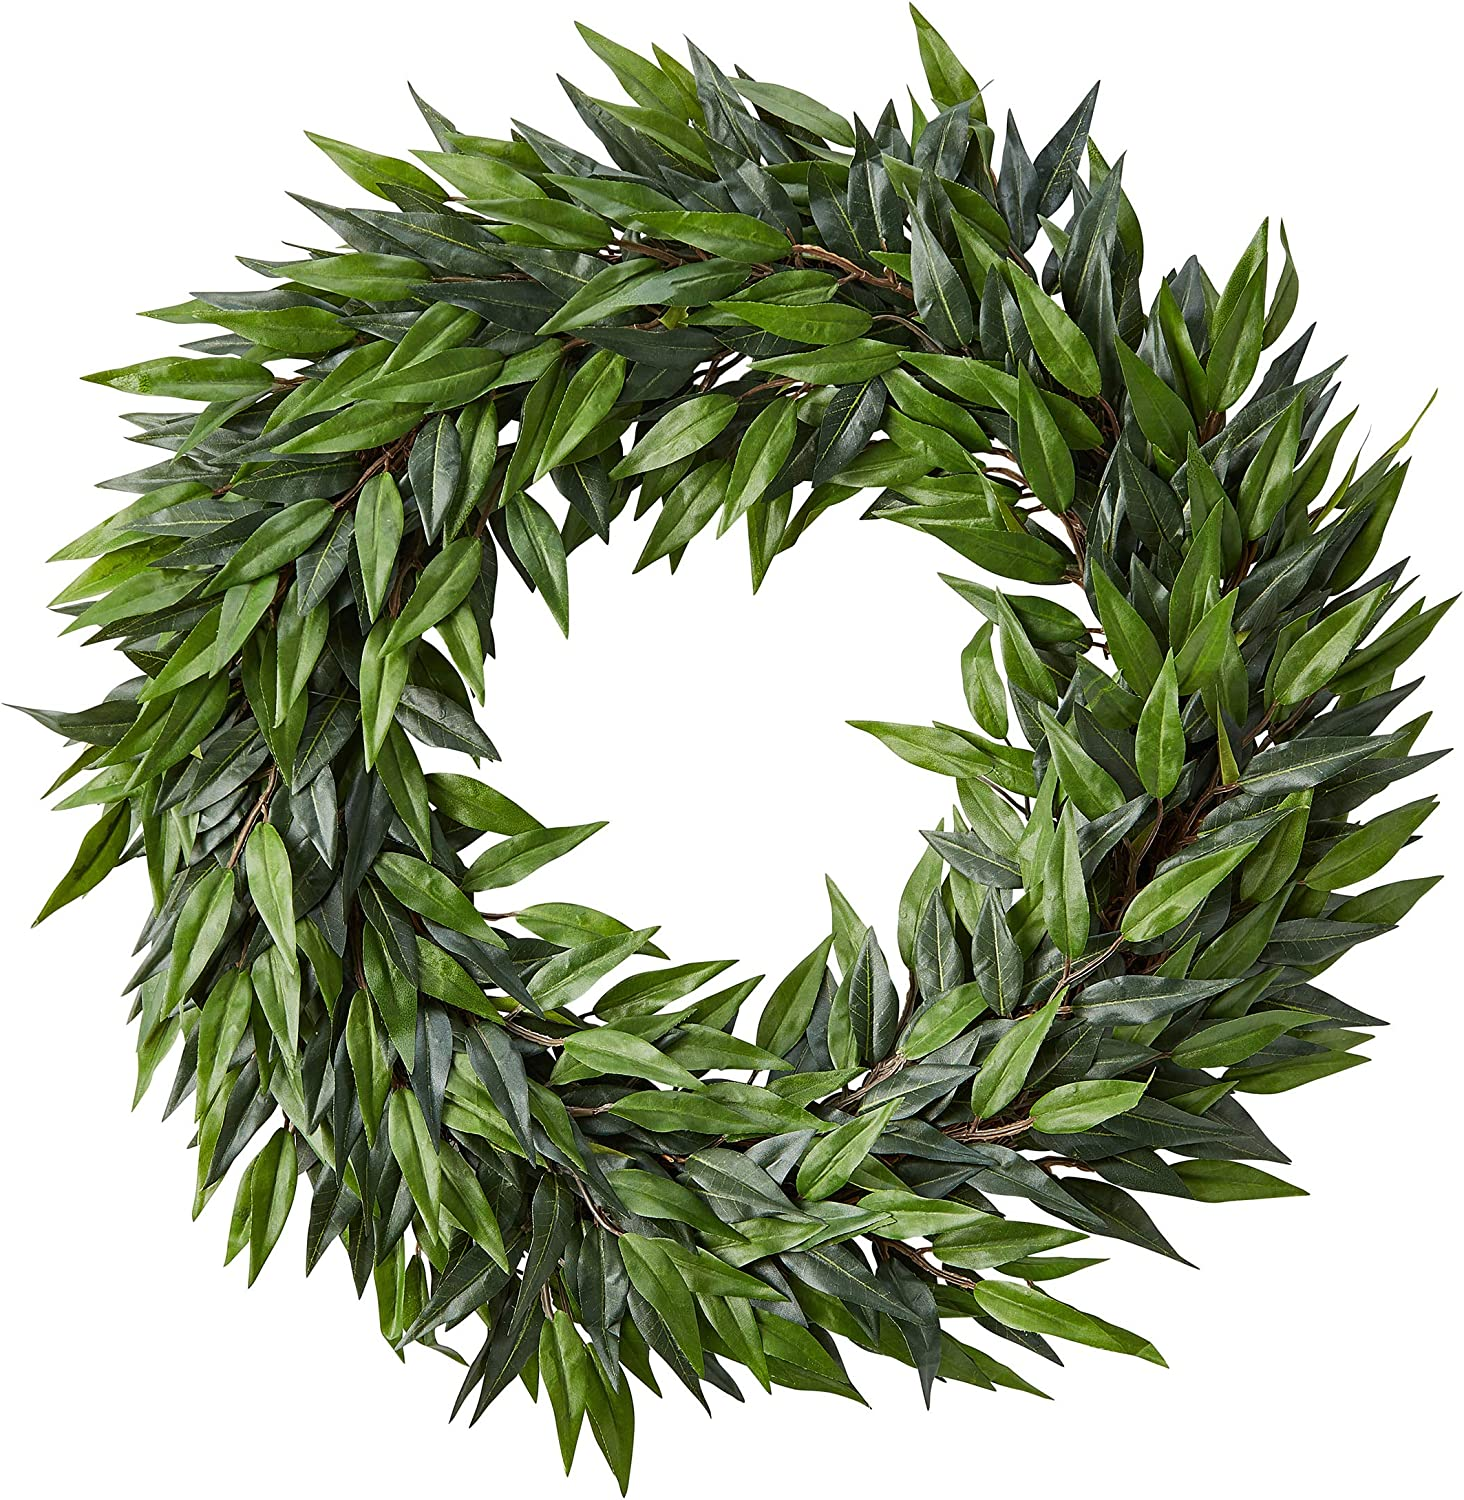 Pure Garden 22-Inch Artificial Ficus Microphylla Leaf Wreath – Indoor Lifelike Round Faux Greenery - Seasonal and Holiday Decor - Home or Office